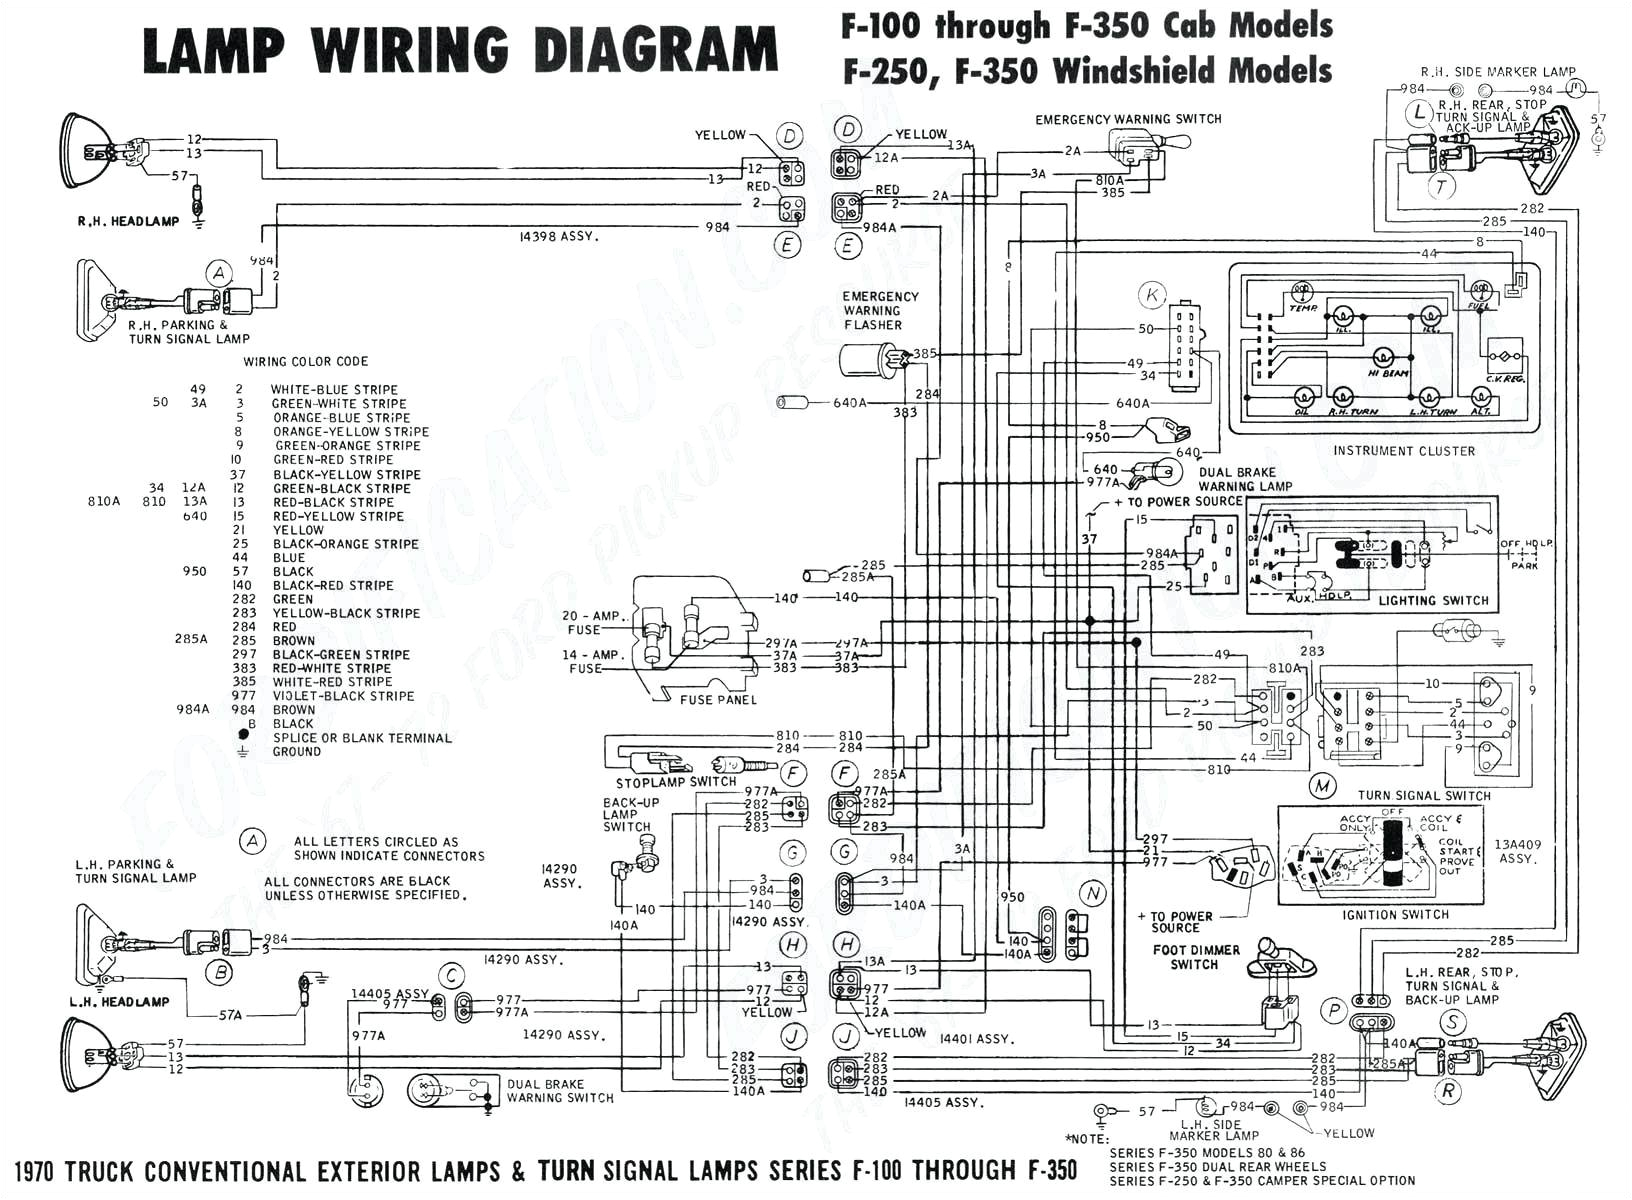 Renault Megane Wiring Diagram Pdf Mega 2 Wiring Diagram Wiring Diagram Name